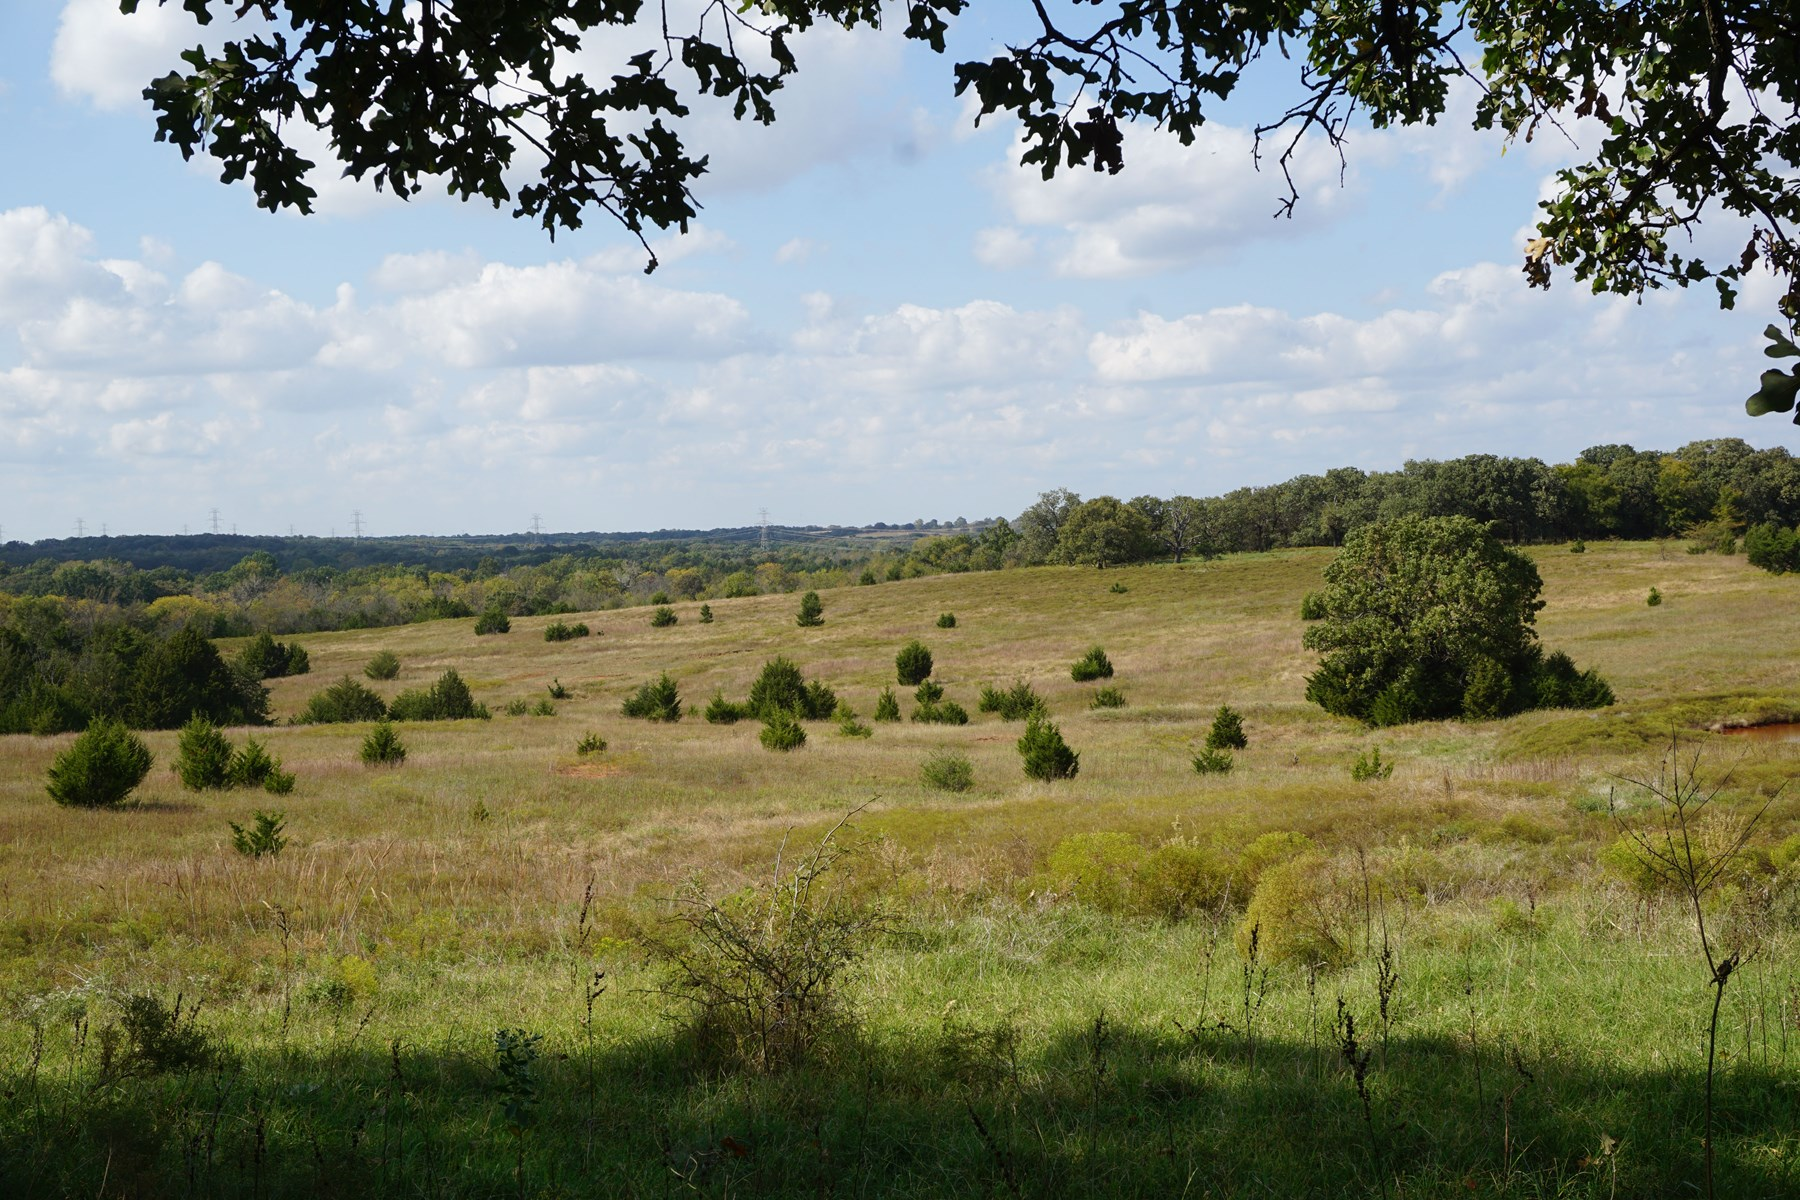 No Reserve Land Auction, Lincoln County, OK Nov 8 1:30 p.m.